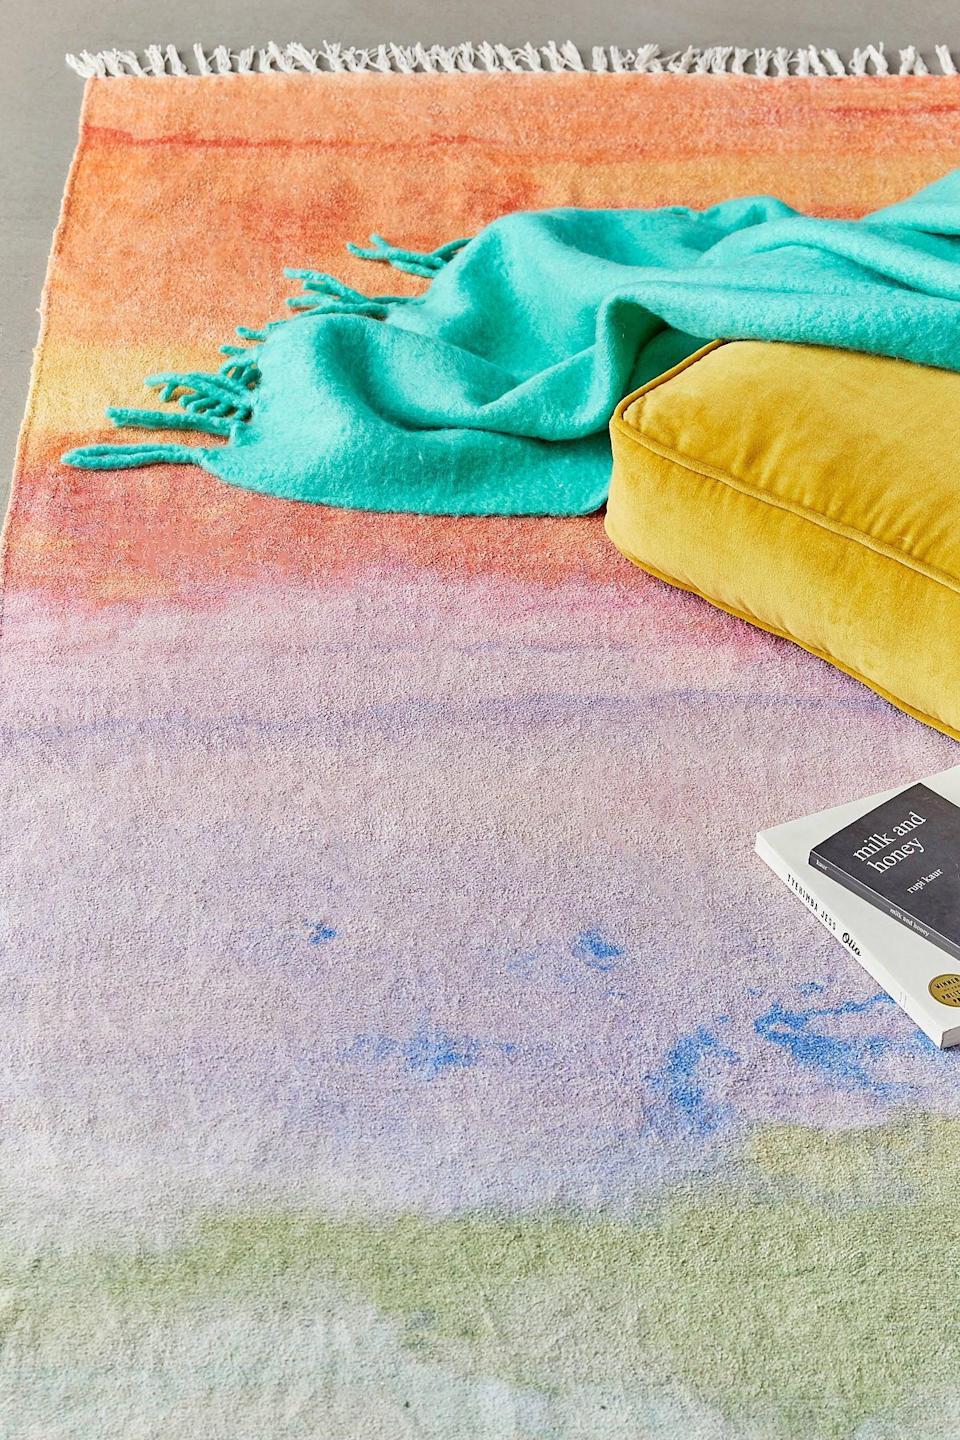 """<p>Add some color to your room with this <a href=""""https://www.popsugar.com/buy/Watercolor-Sunset-Chenille-Rug-546155?p_name=Watercolor%20Sunset%20Chenille%20Rug&retailer=urbanoutfitters.com&pid=546155&price=189&evar1=casa%3Aus&evar9=45677589&evar98=https%3A%2F%2Fwww.popsugar.com%2Fhome%2Fphoto-gallery%2F45677589%2Fimage%2F47177157%2FWatercolor-Sunset-Chenille-Rug&list1=shopping%2Curban%20outfitters%2Chome%20decor%2Cfurniture%2Csmall%20space%20living%2Chome%20shopping&prop13=api&pdata=1"""" class=""""link rapid-noclick-resp"""" rel=""""nofollow noopener"""" target=""""_blank"""" data-ylk=""""slk:Watercolor Sunset Chenille Rug"""">Watercolor Sunset Chenille Rug</a> ($189).</p>"""